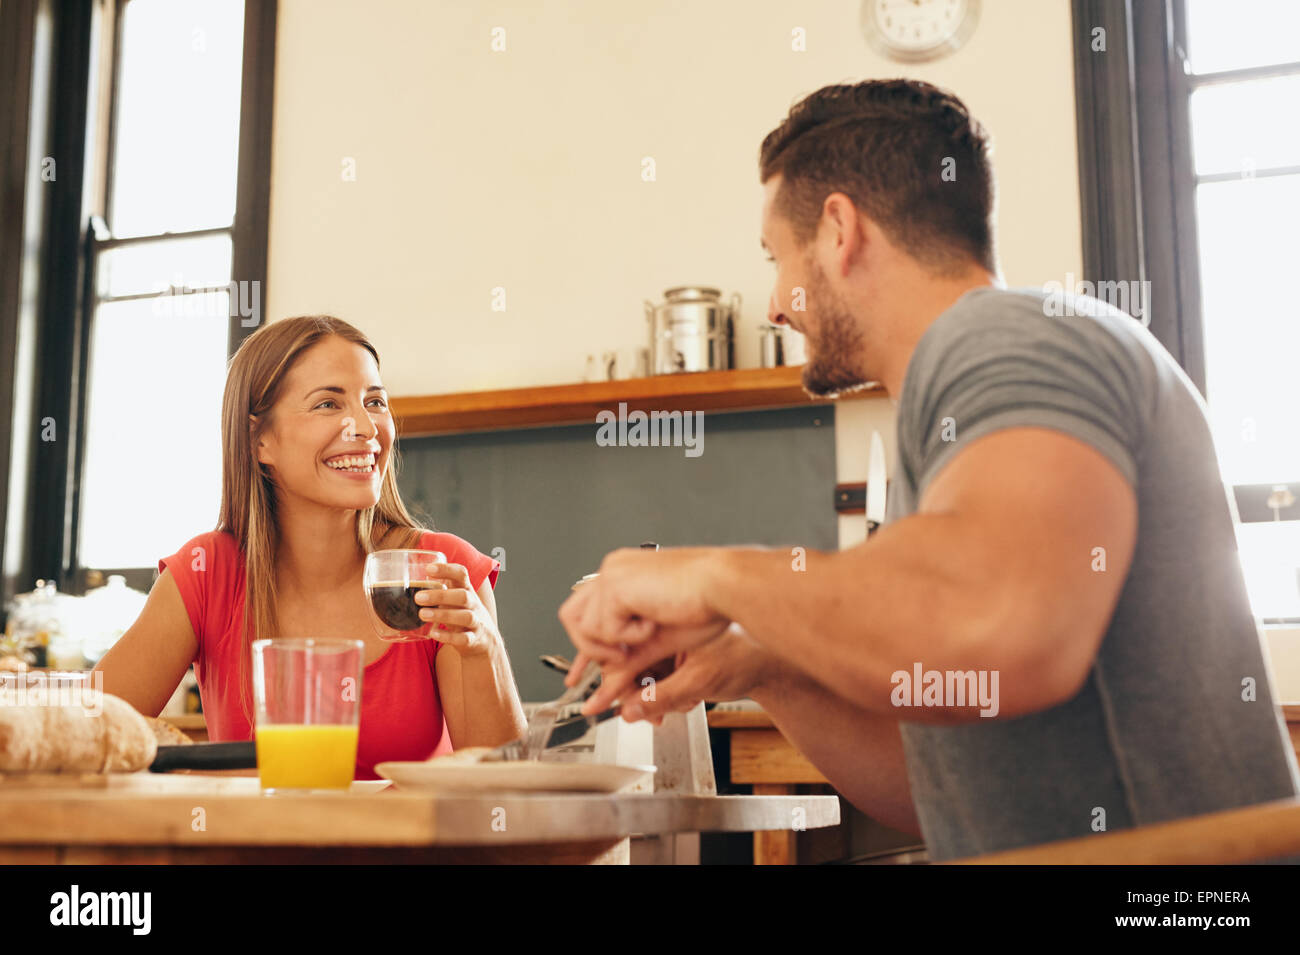 Shot of cheerful young couple having breakfast in kitchen at home. Young woman drinking coffee looking at man smiling - Stock Image